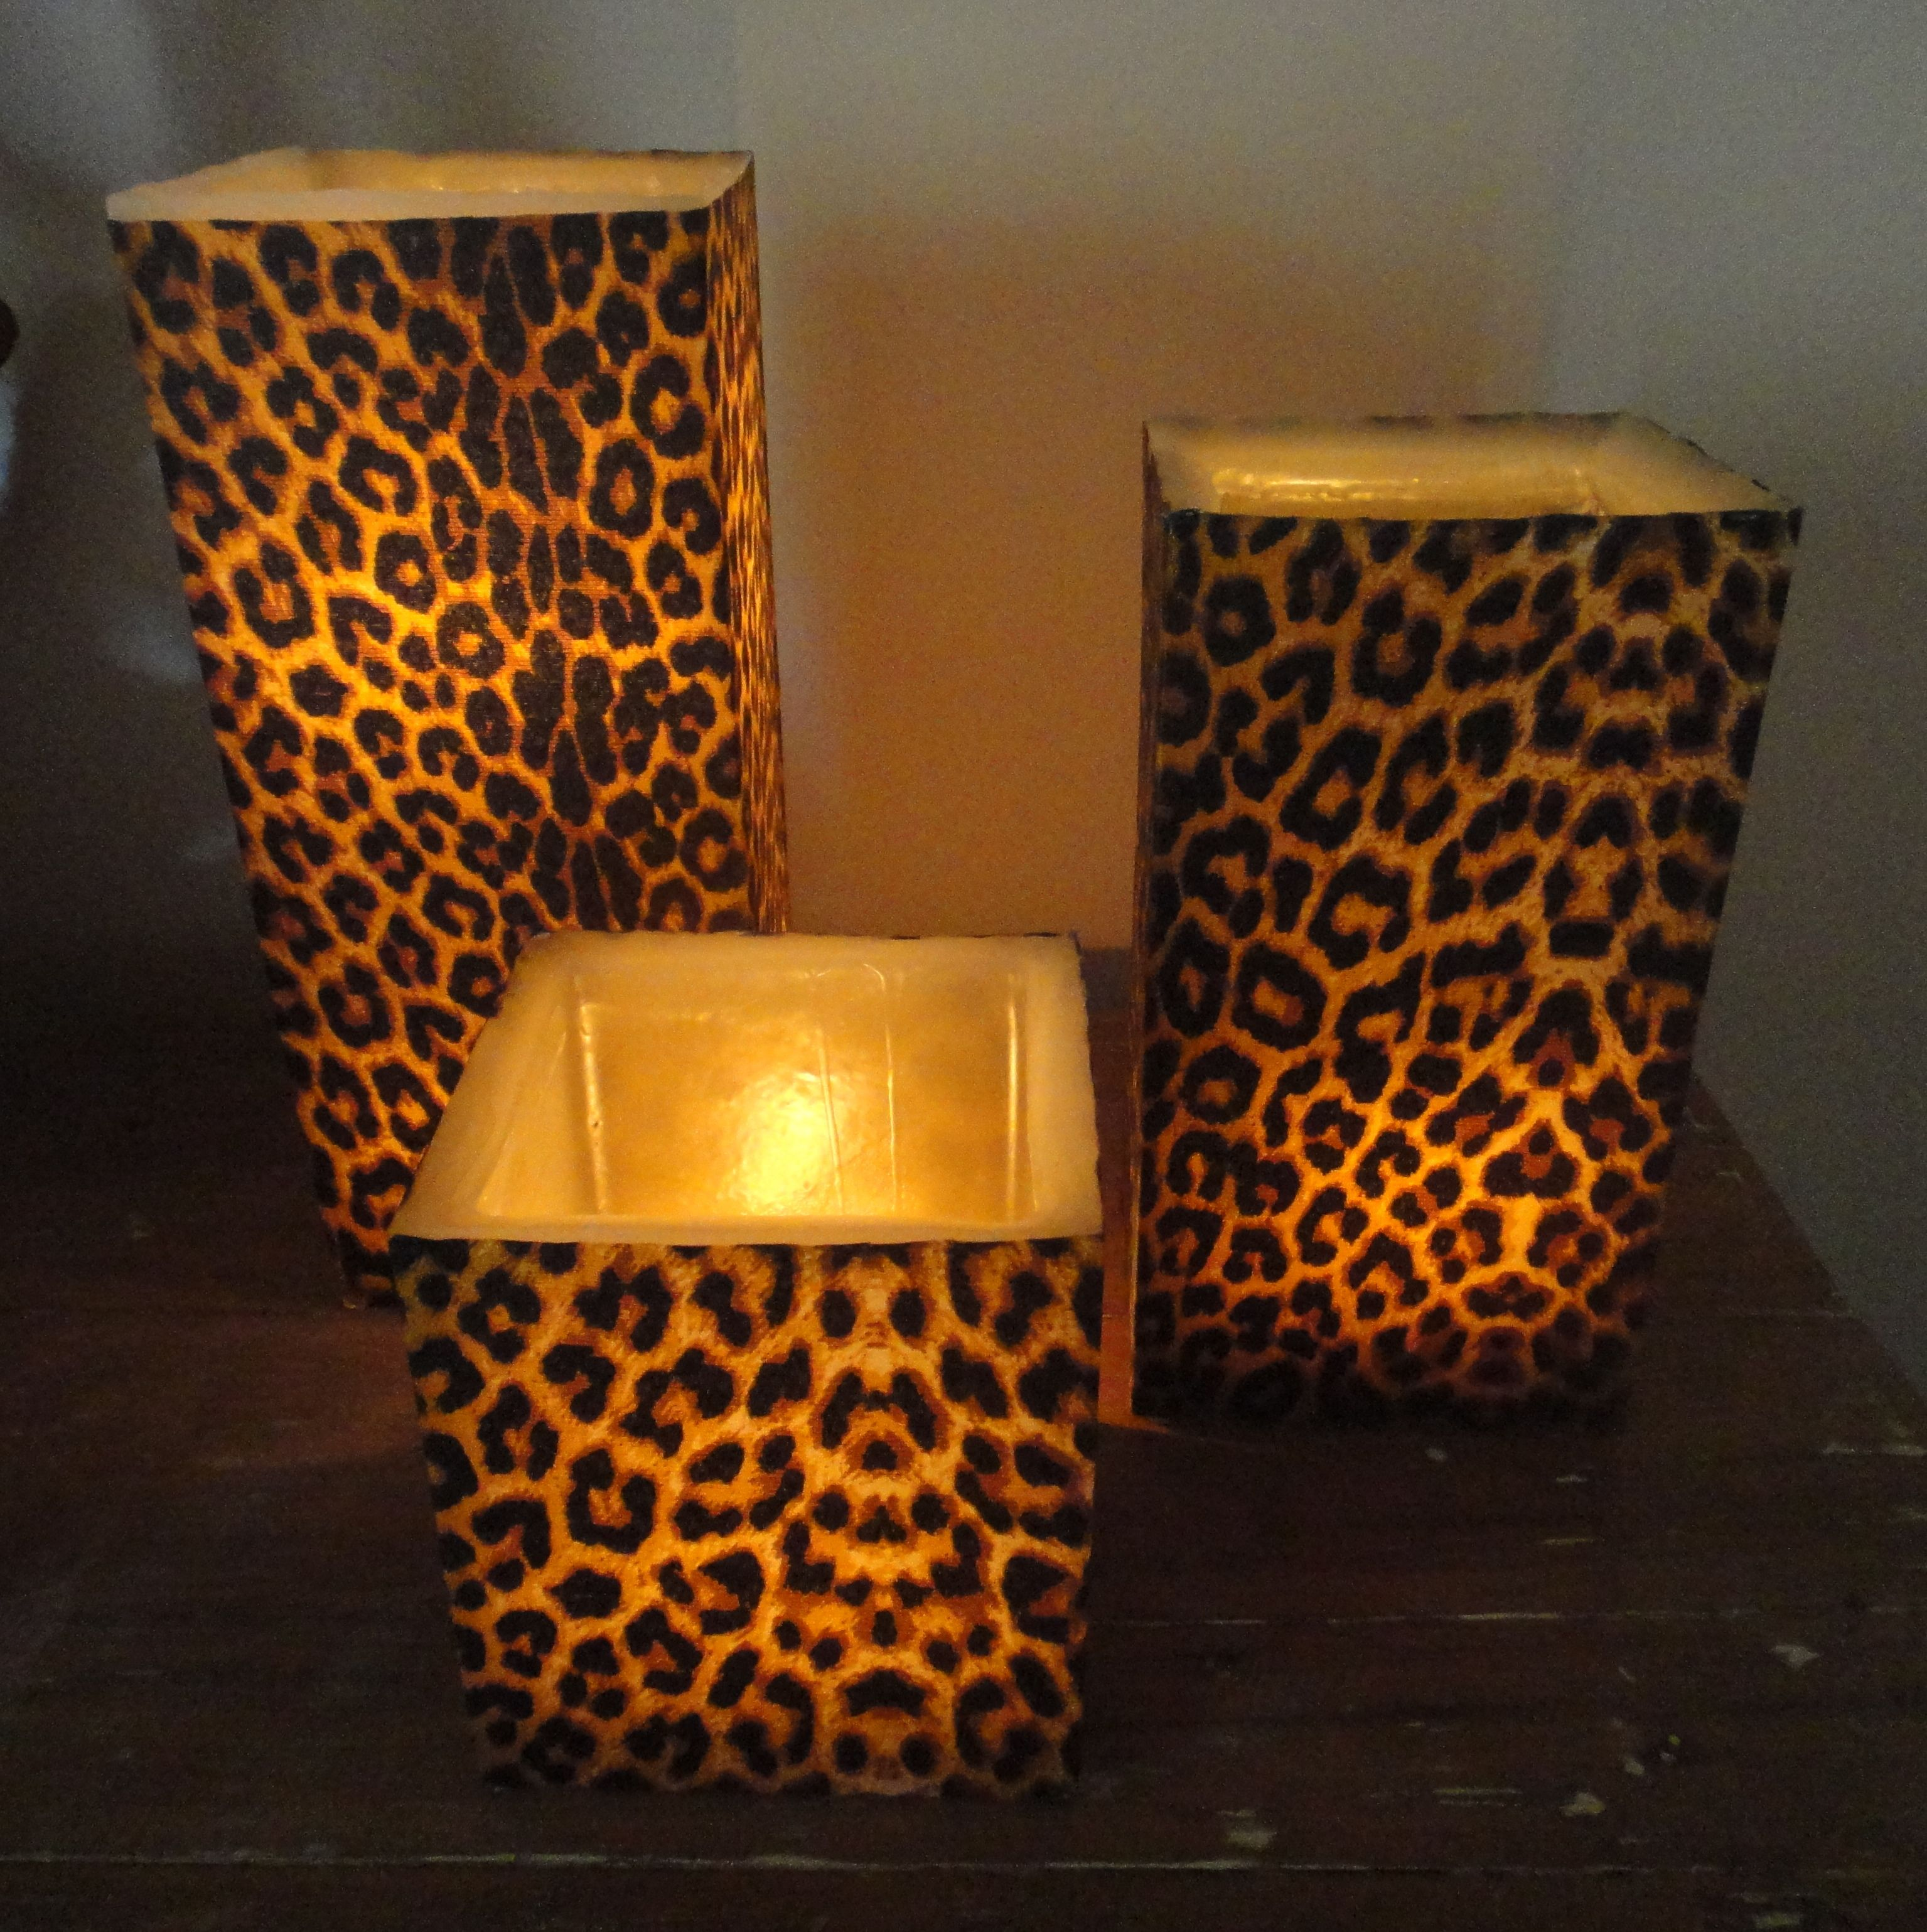 Zebra Design Bedroom Ideas Bedroom Decorating Ideas Yellow And Gray Bedroom Black And White Design Bedroom Paint Ideas For Kids: Ooooo Just Got An Idea Booring Candle Holders From The